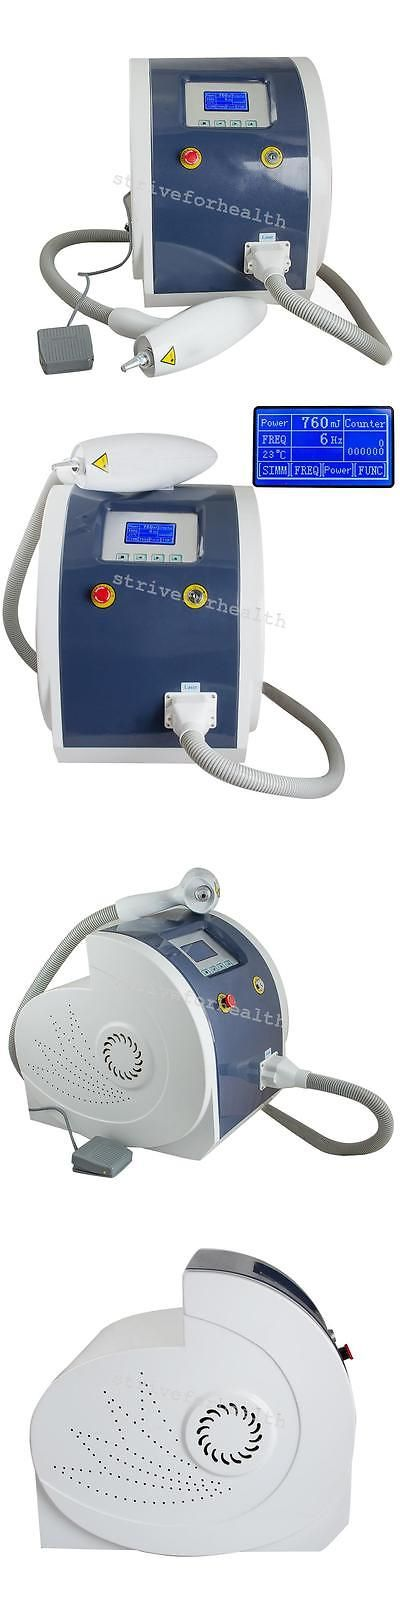 Tattoo Removal Machines: Yag Laser Tattoo Eyebrow Eyelid Flecks Pigment Removal System Beauty Equipment -> BUY IT NOW ONLY: $1138.0 on eBay!